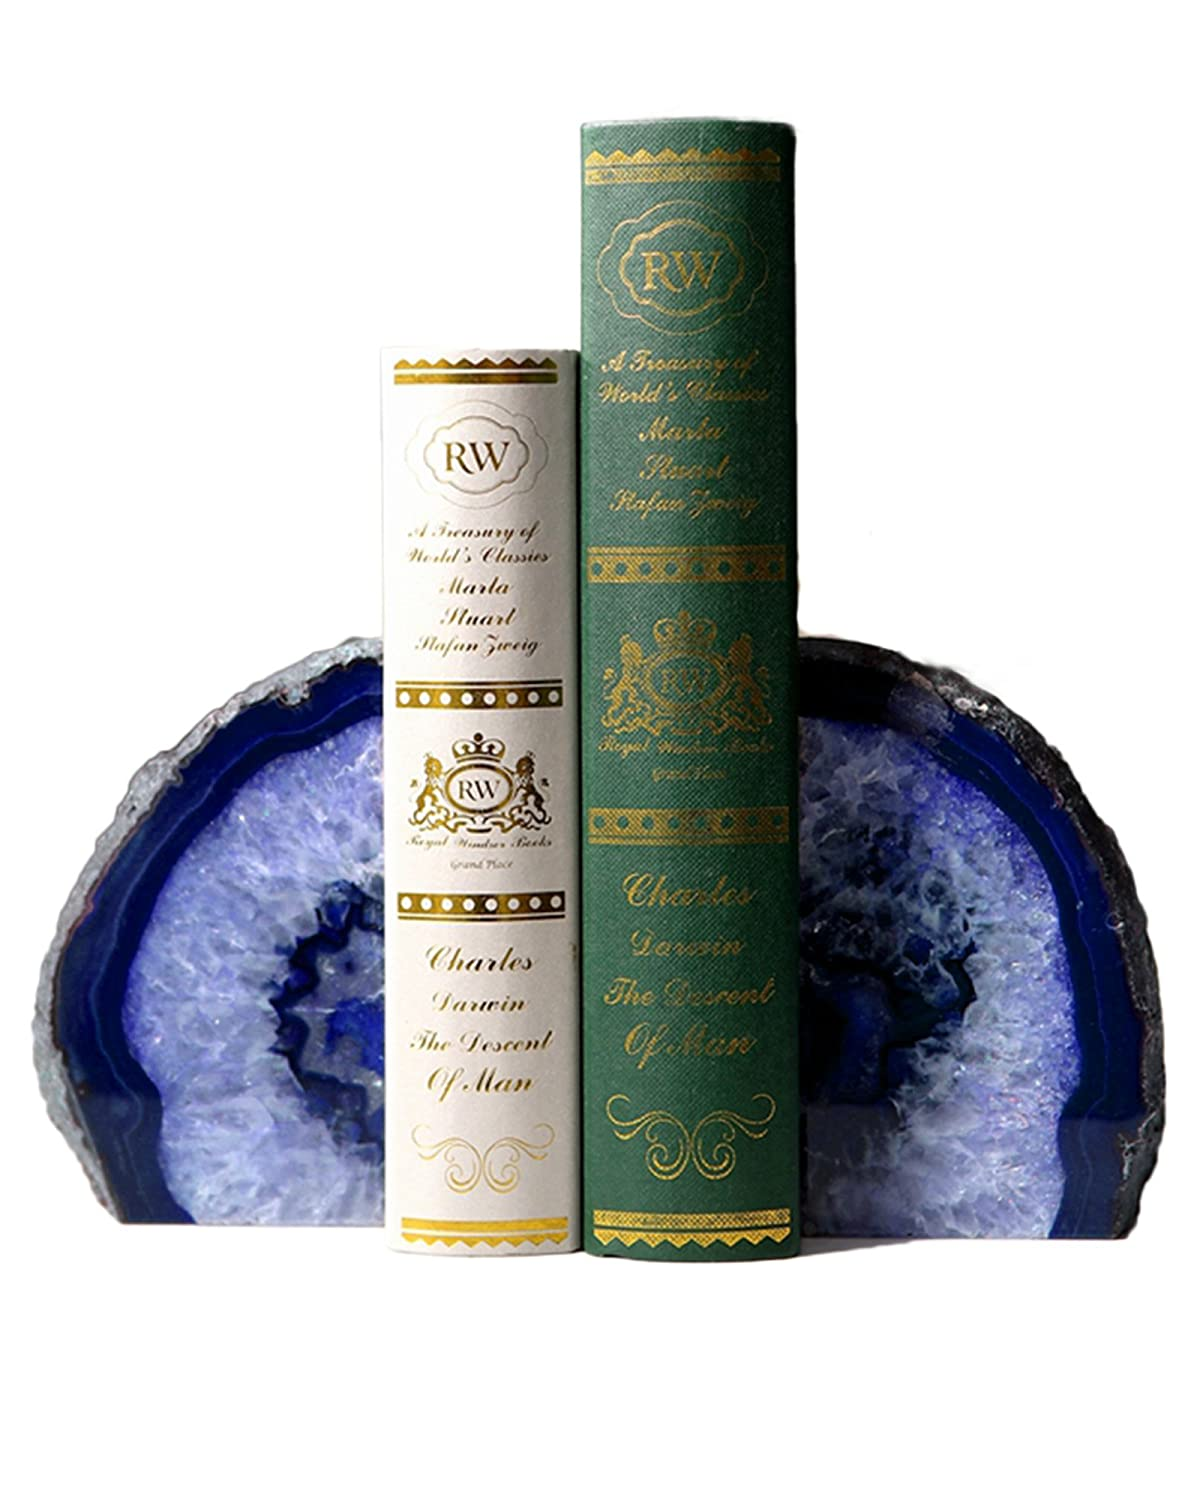 AMOYSTONE Blue Agate Bookends 2-3 lbs Polished Dyed for Books 1 Pair with Rubber Bumpers